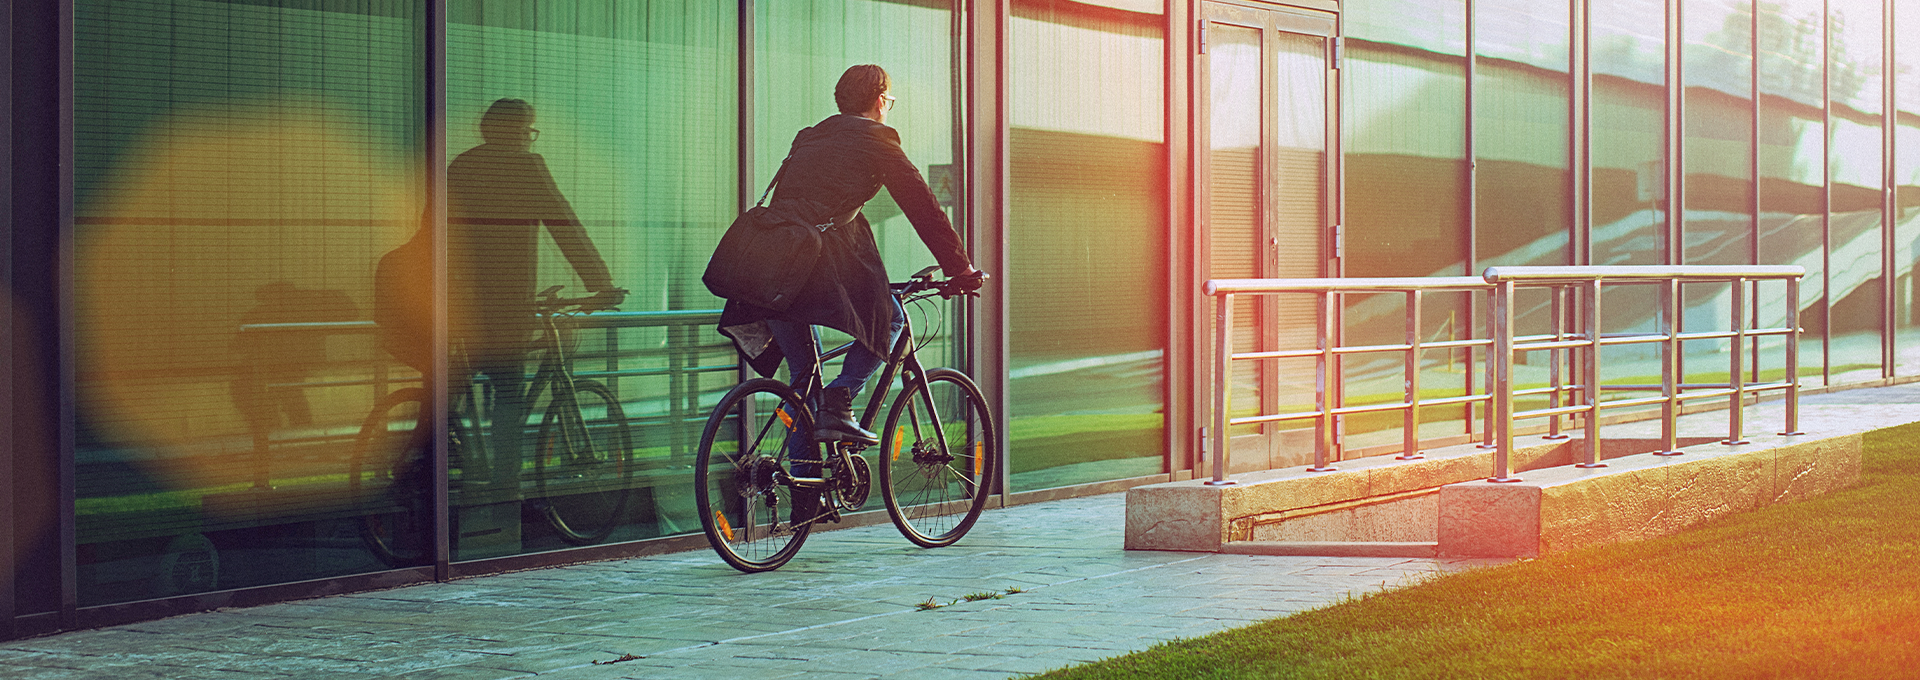 man cycling in front of office building